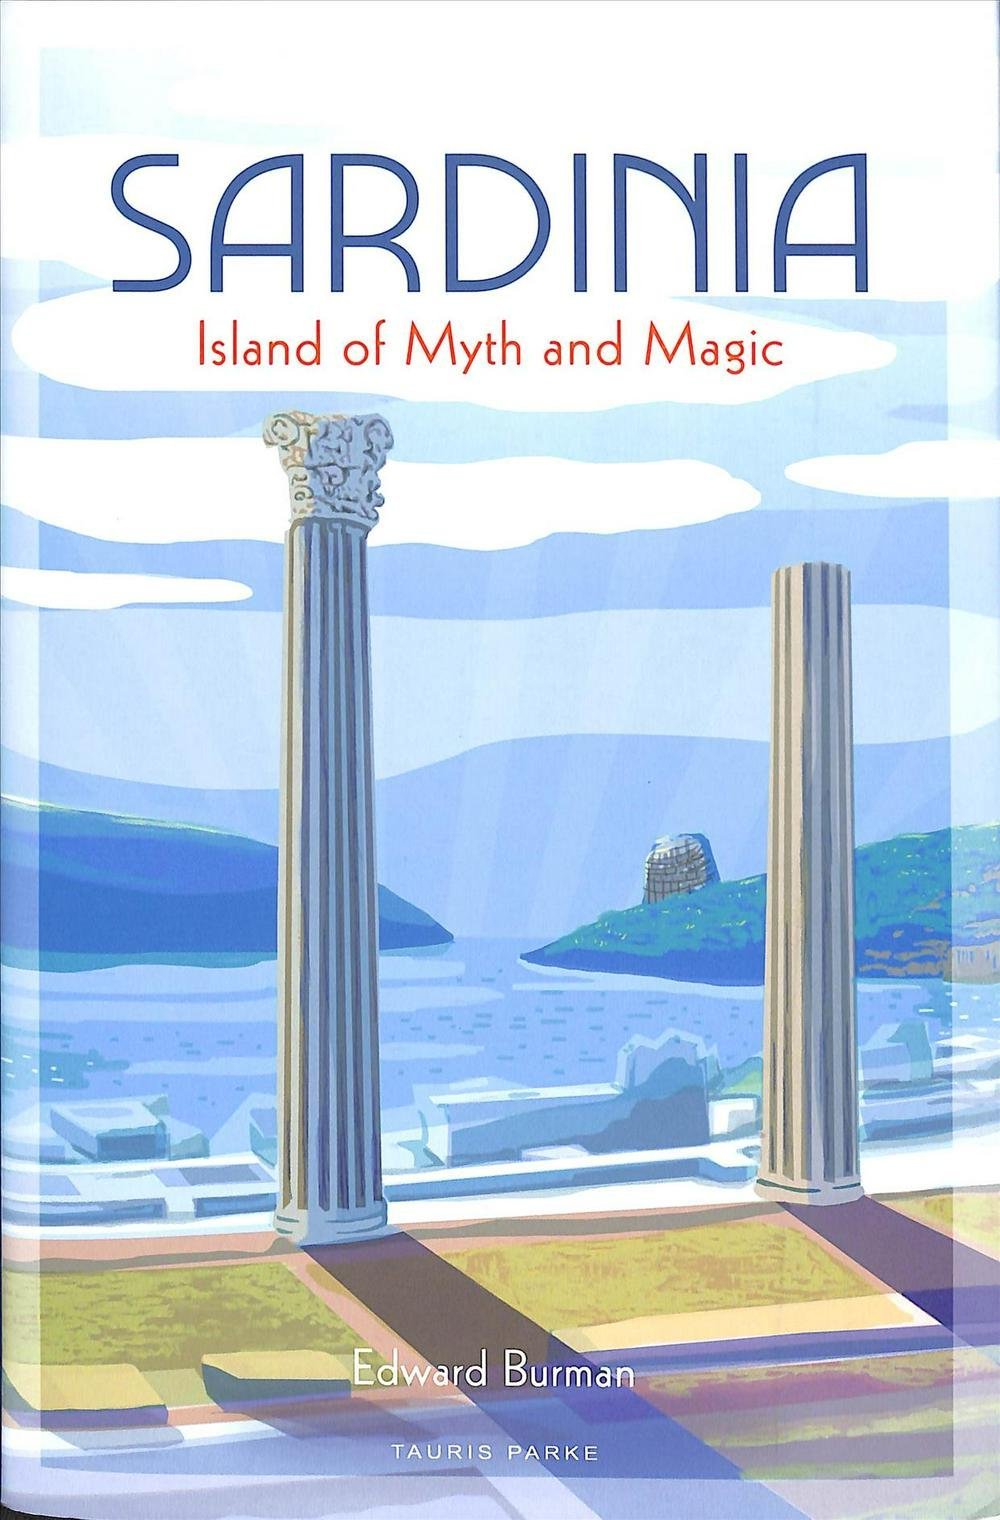 Sardinia | Island of Myth and Magic 9781788314329 Edward Burman I B Tauris & Co Ltd   Reisgidsen Sardinië